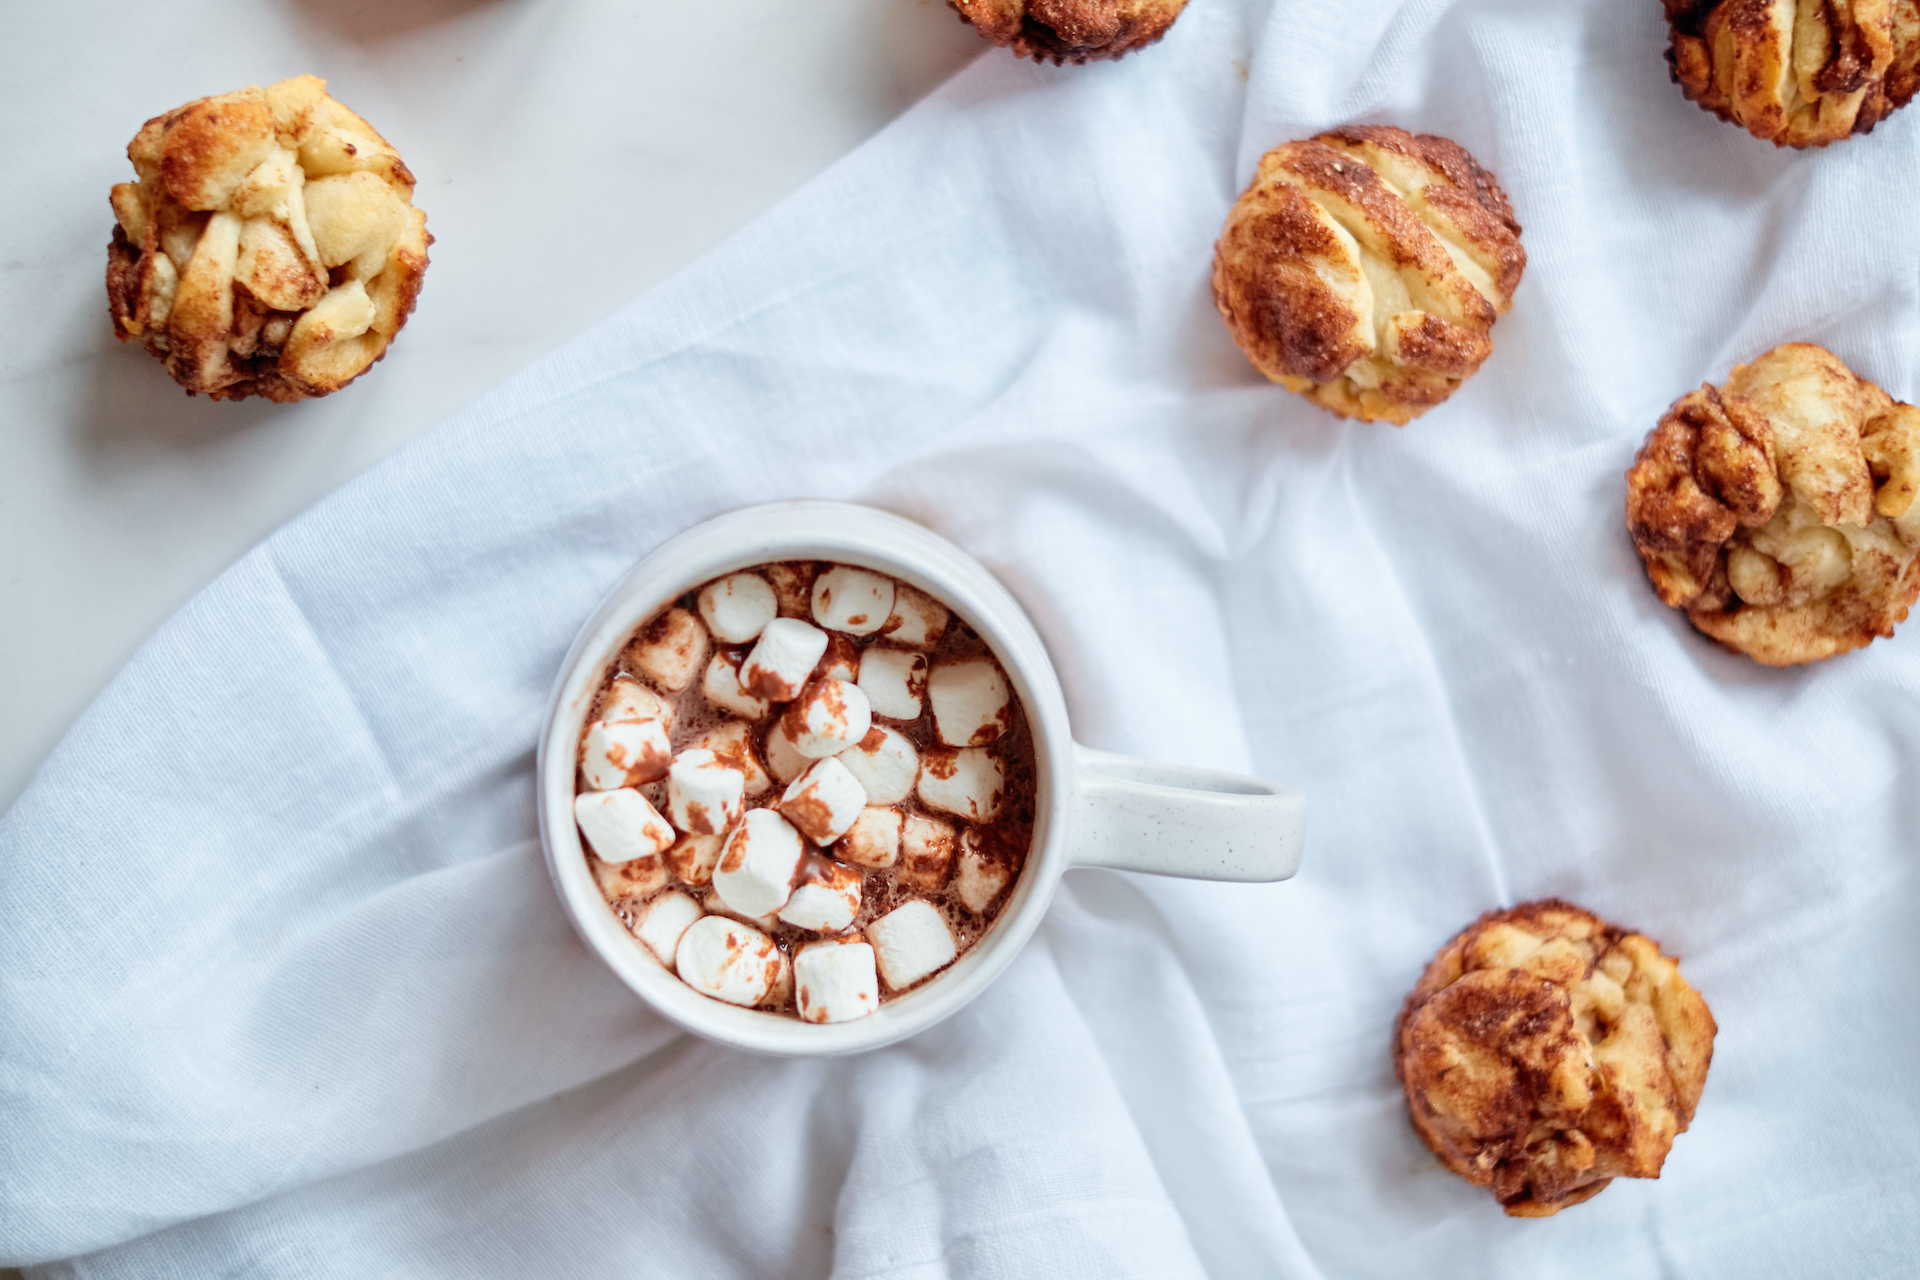 a cup of hot chocolate with marshmallows sitting on a white cloth surrounded by muffins